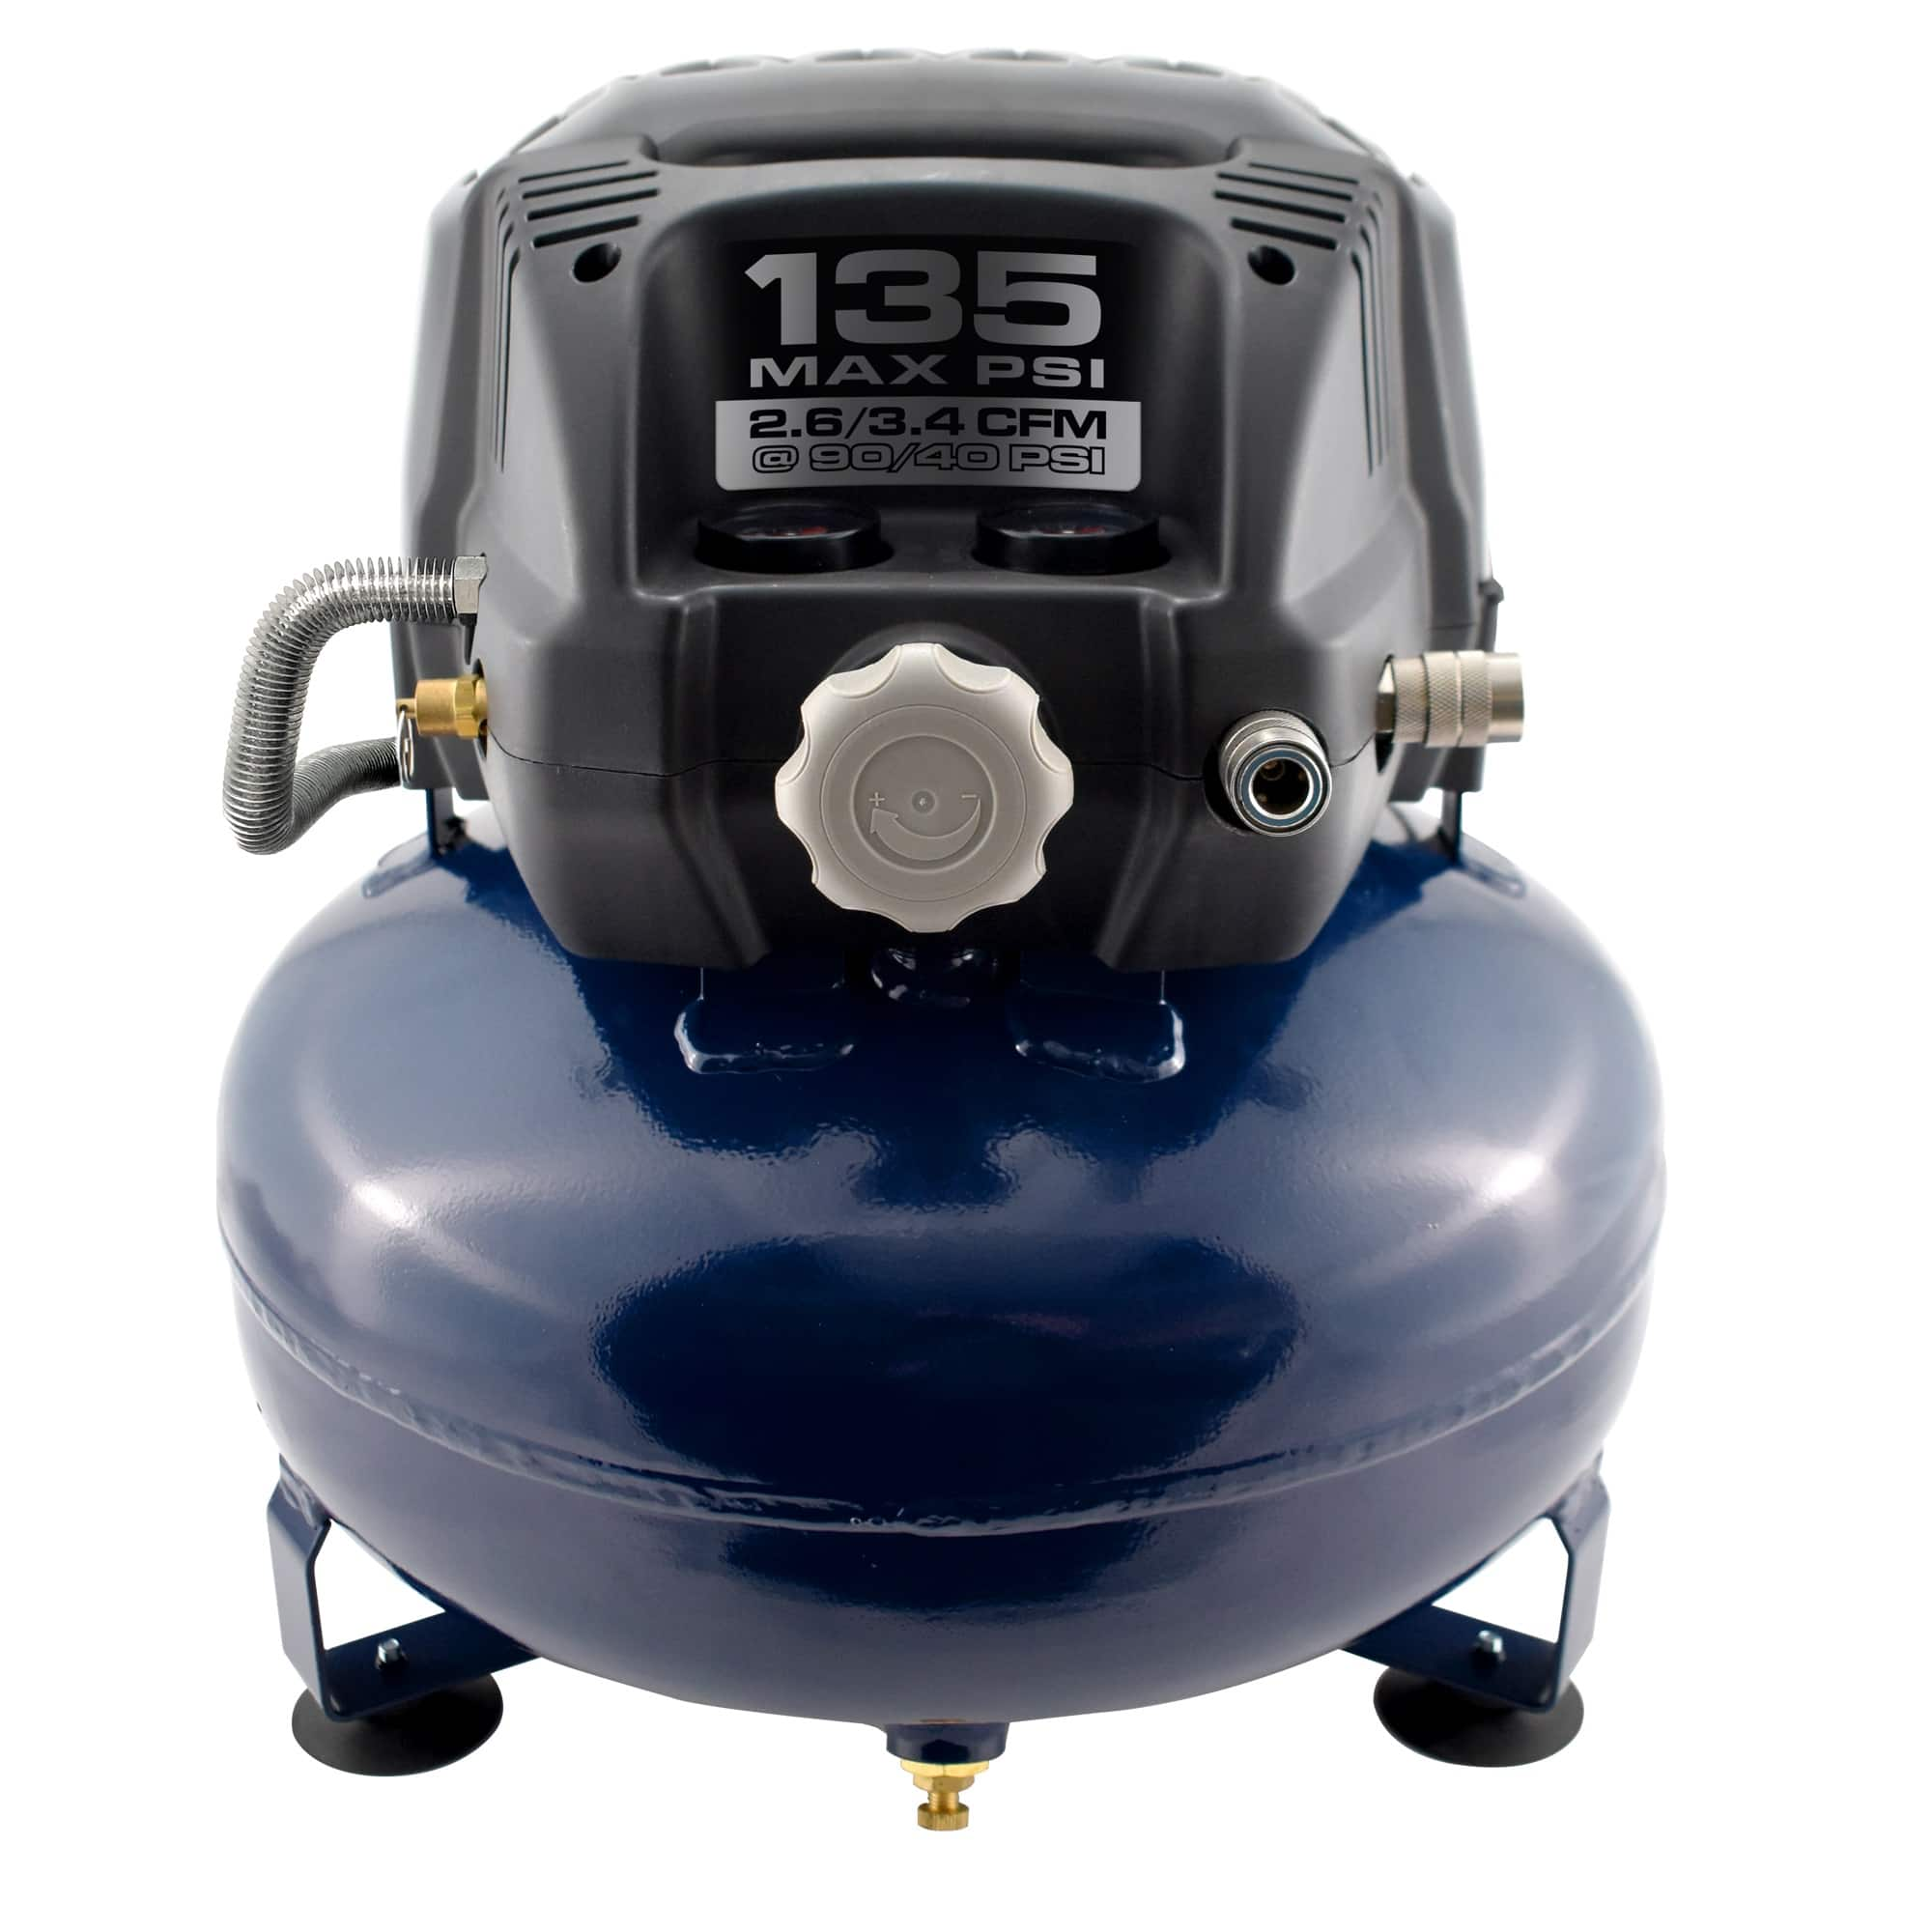 Campbell Hausfeld 6 Gallon Oil Free Air Compressor - $39.60 @ Walmart + FS